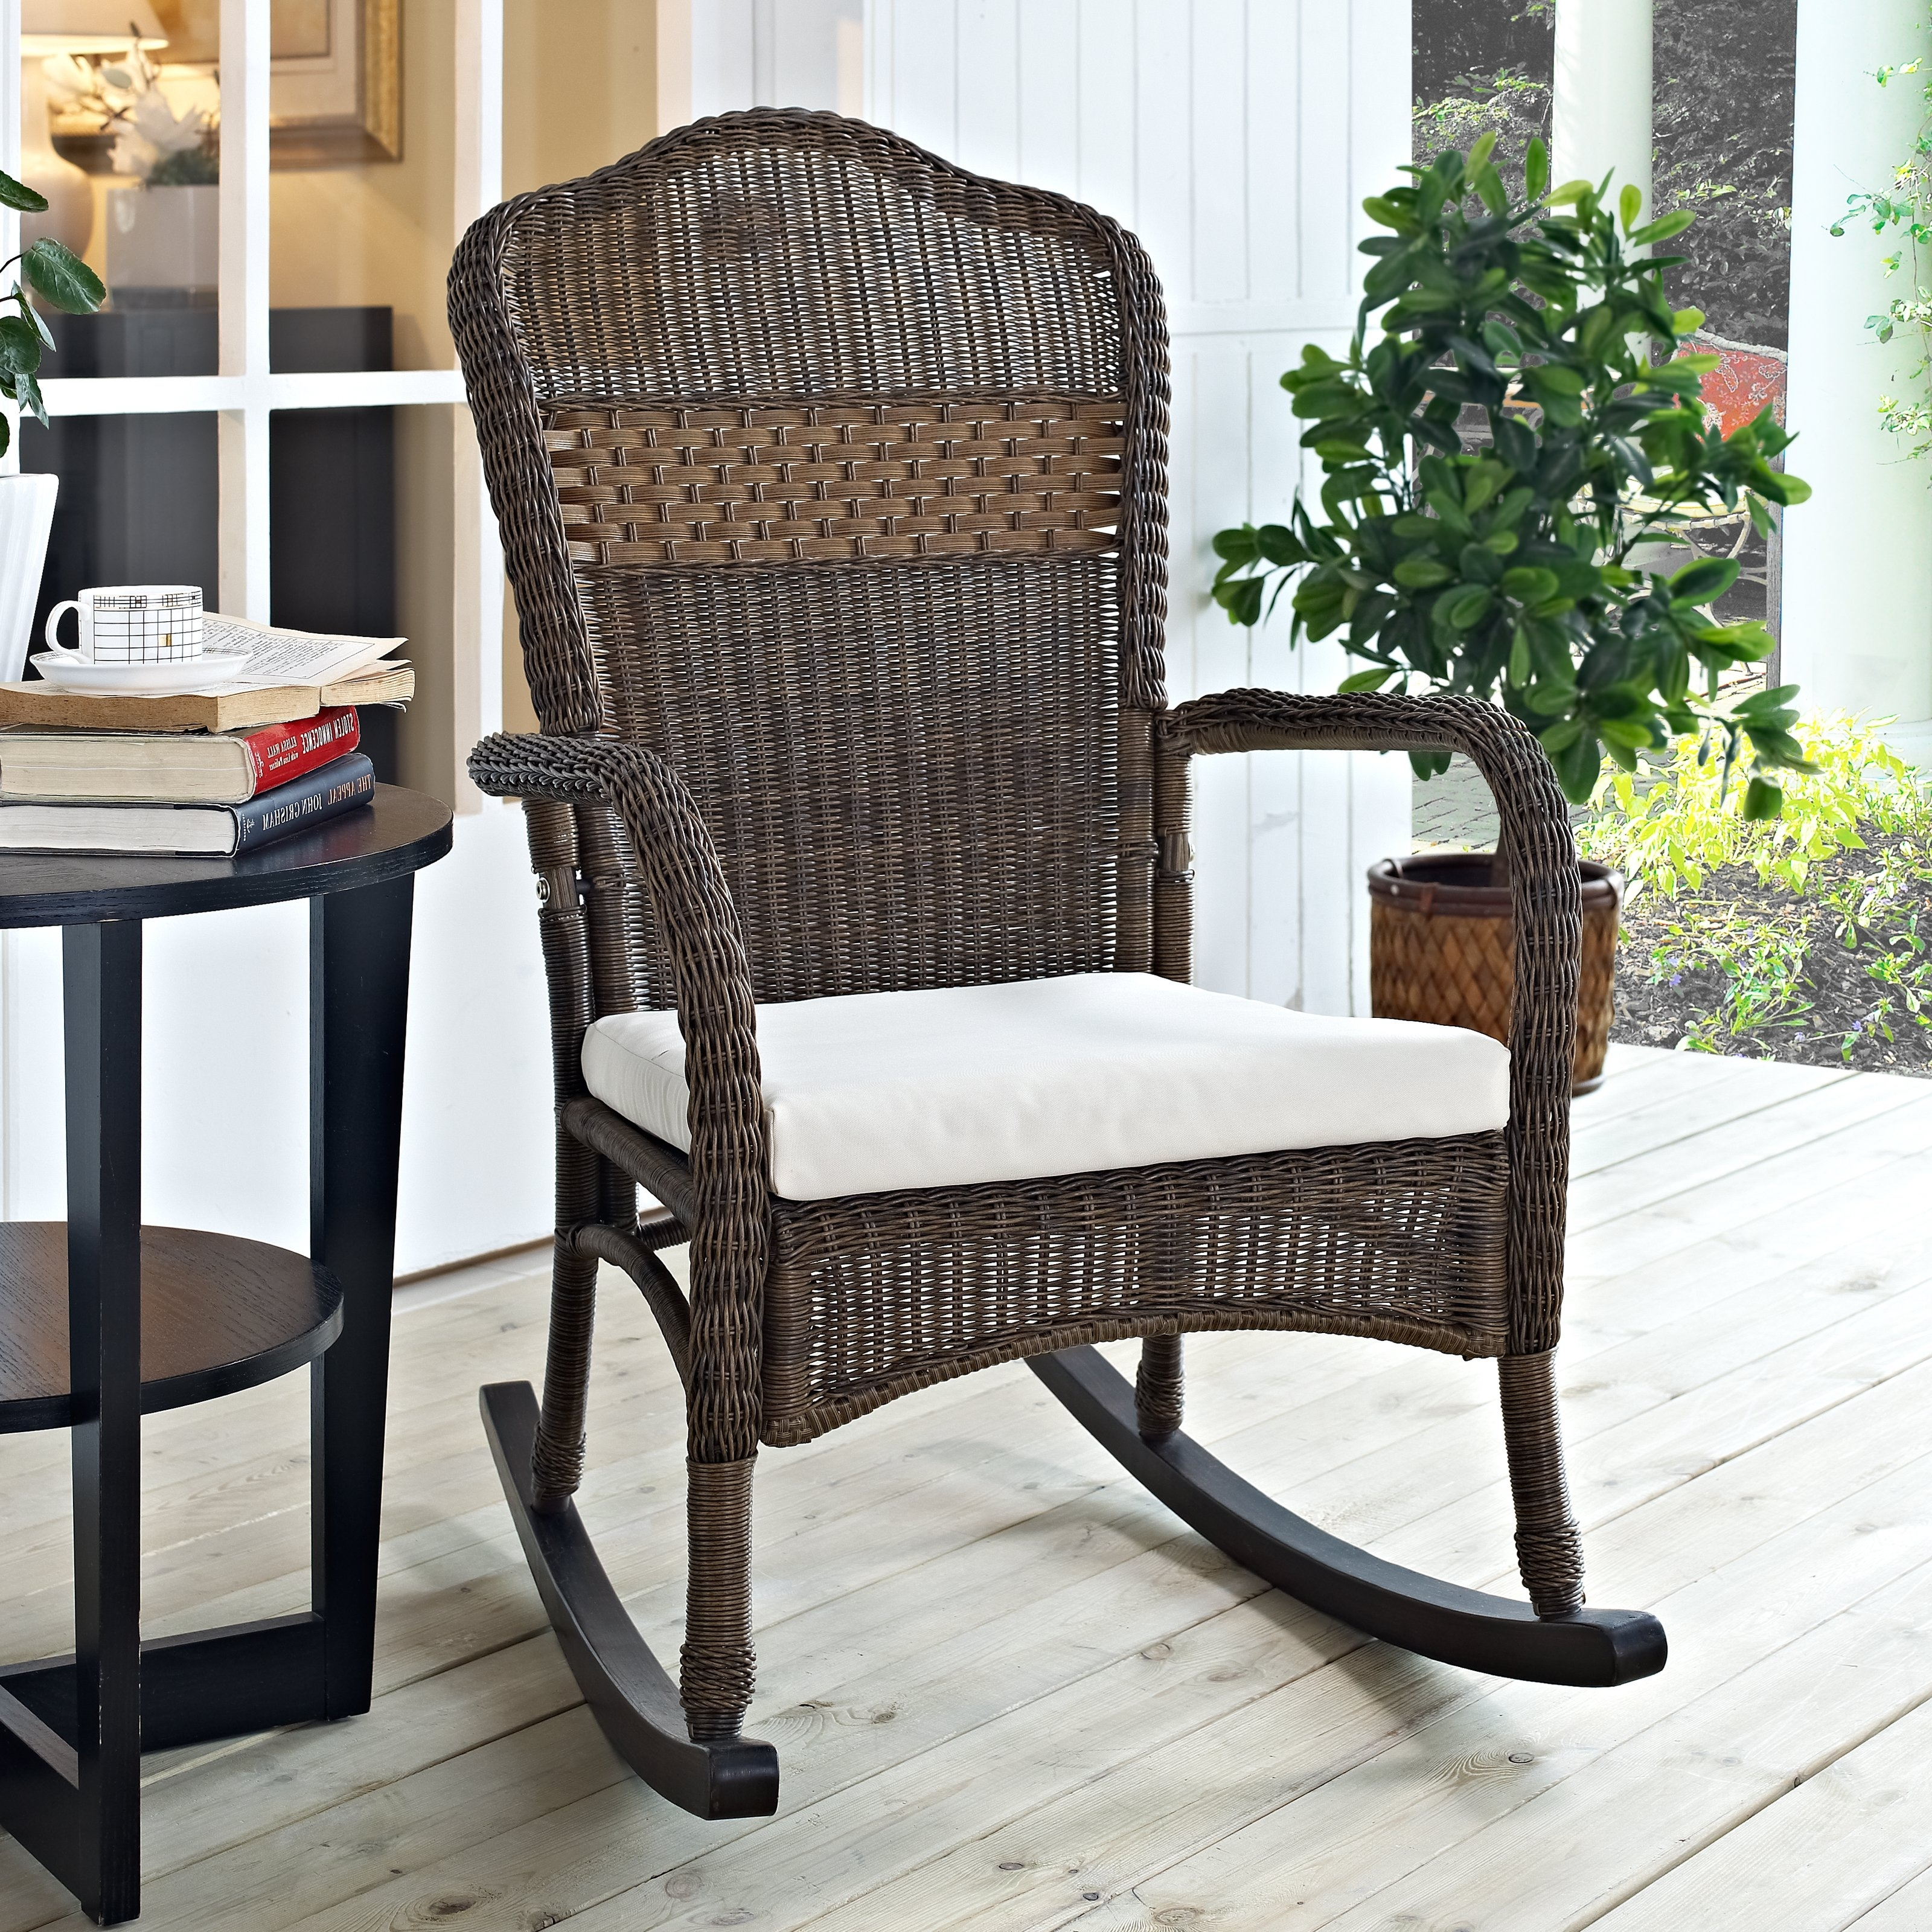 Rocking Chairs With Cushions Inside Most Up To Date Coral Coast Mocha Resin Wicker Rocking Chair With Beige Cushion (View 11 of 15)